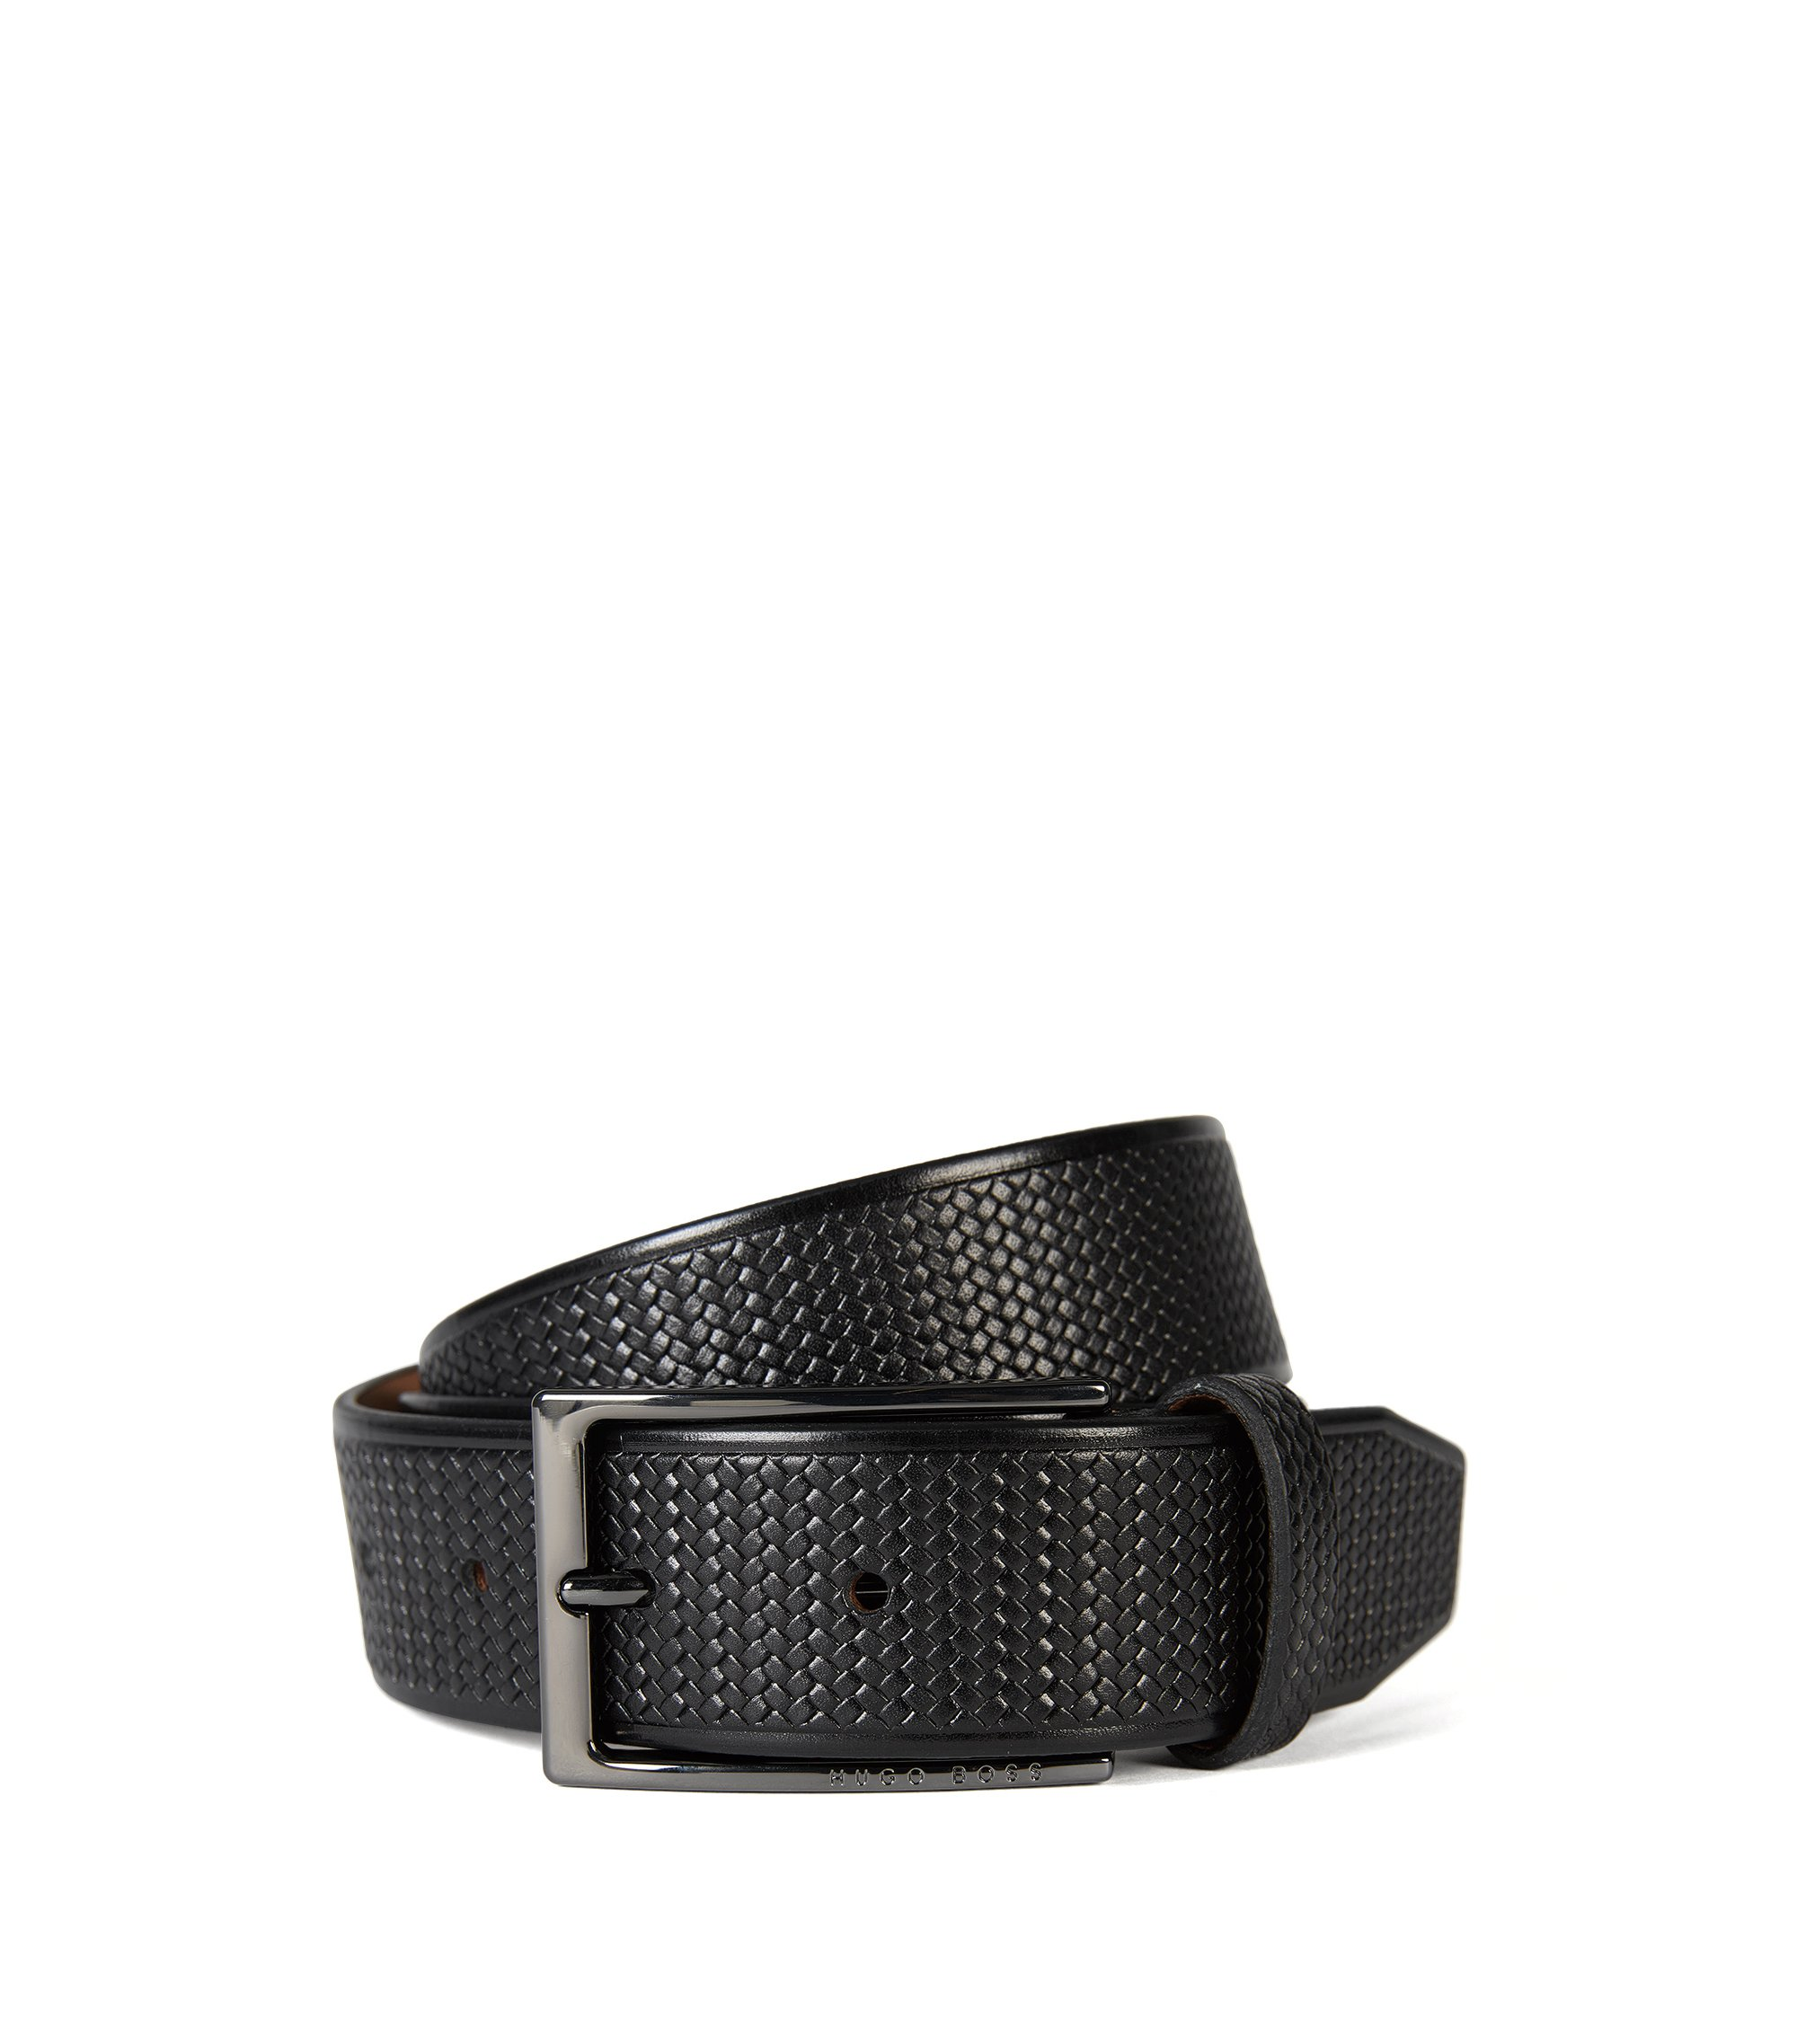 Italian Leather Braided Belt | Claux Sz35 Item, Black